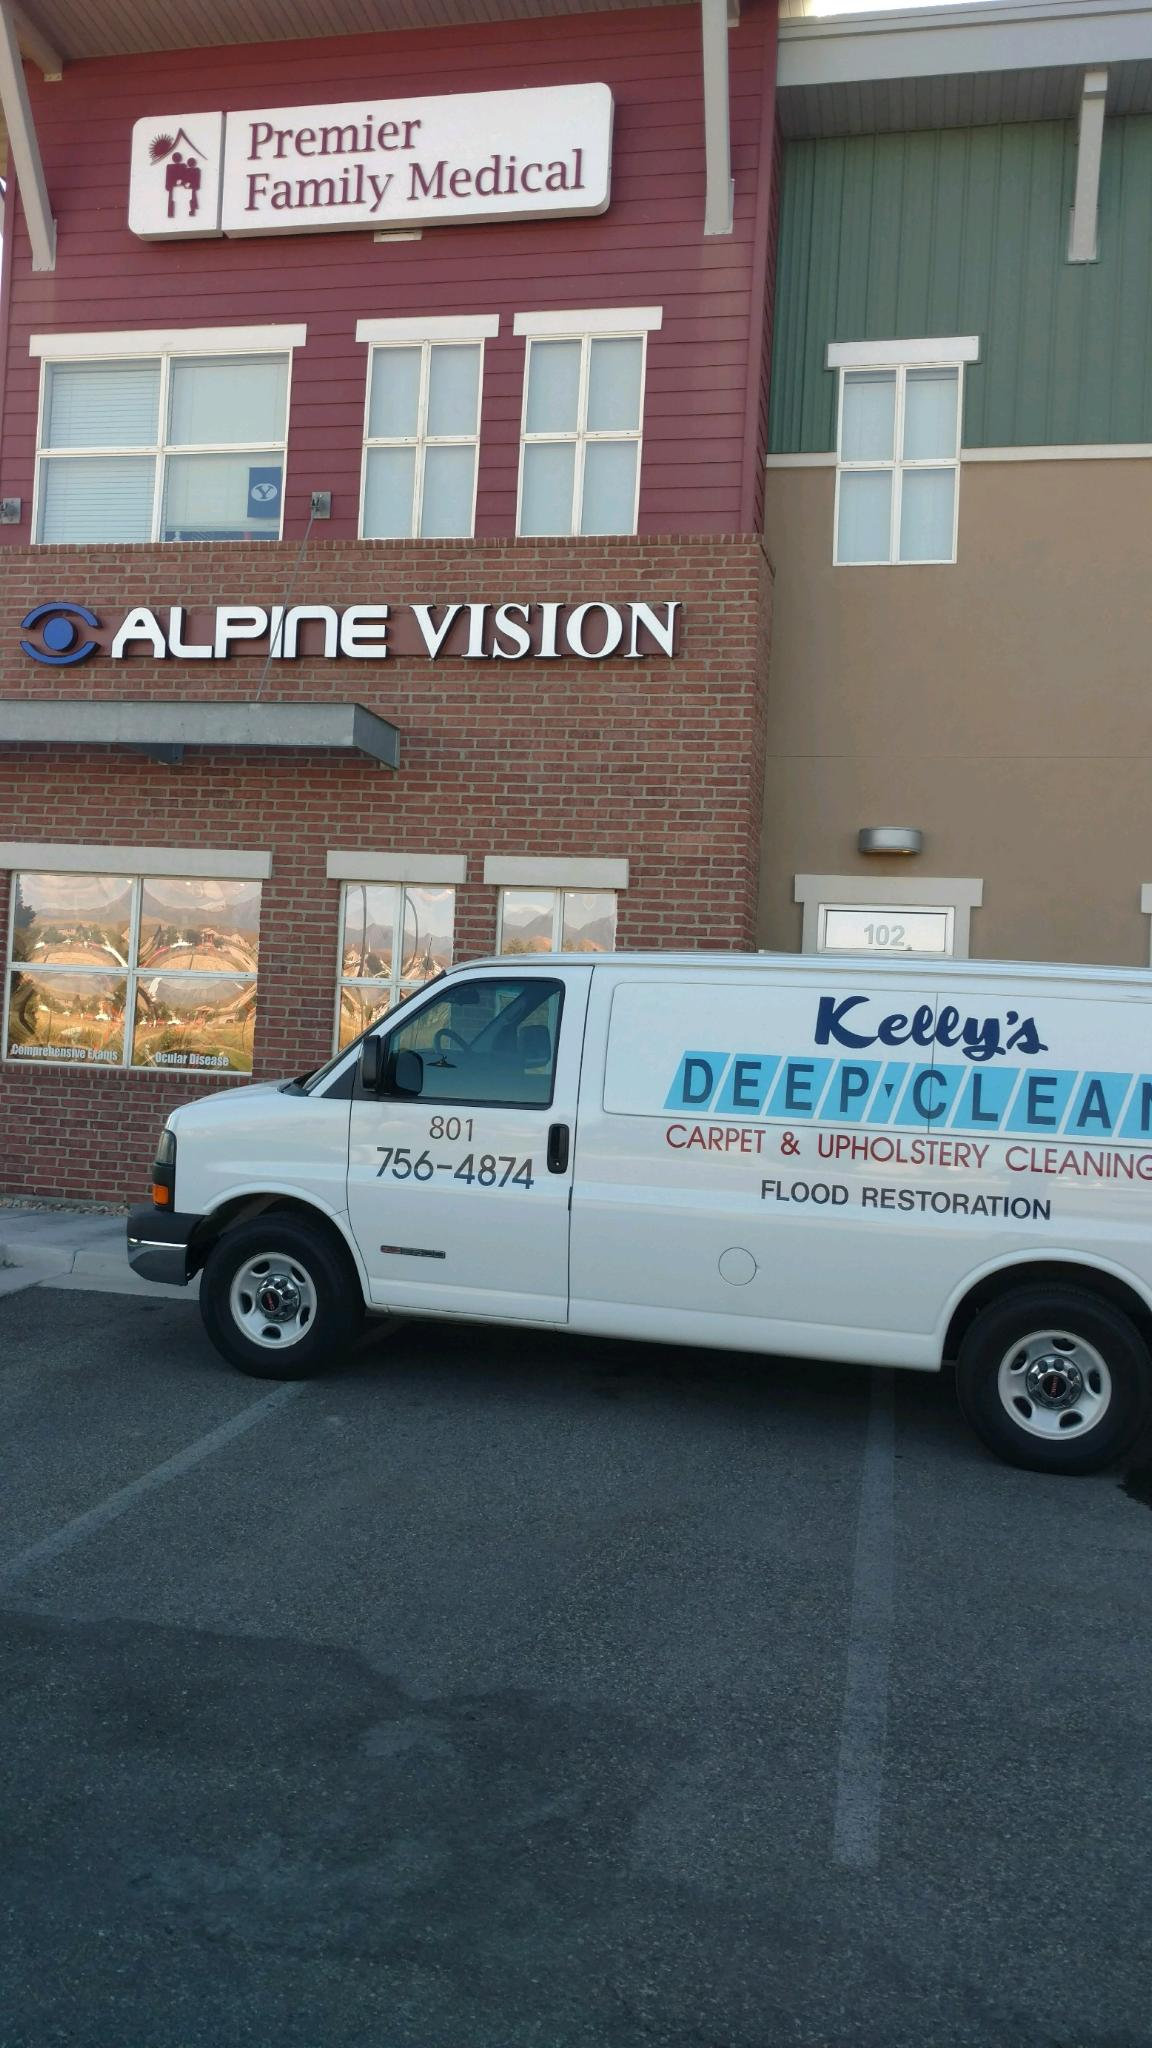 Kelly's Deep Clean Carpet & Upholstery Cleaning image 9